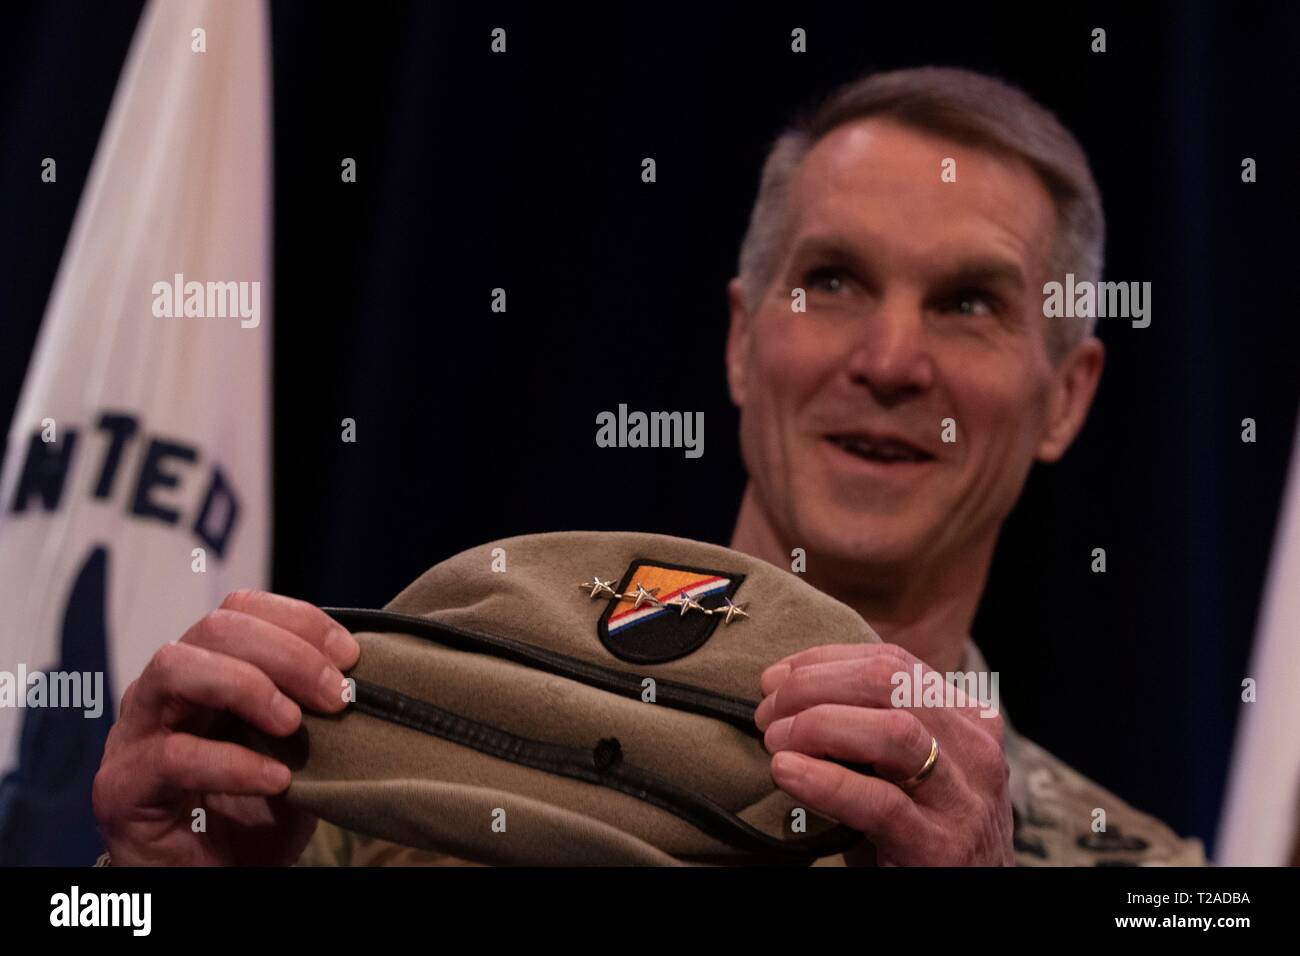 U.S. Army Lt. Gen. Richard D. Clarke during his promotion ceremony as a four star general and the new commander of the Special Operations Command during a ceremony at Macdill Air Force Base March 29, 2019 in Tampa, Florida. - Stock Image